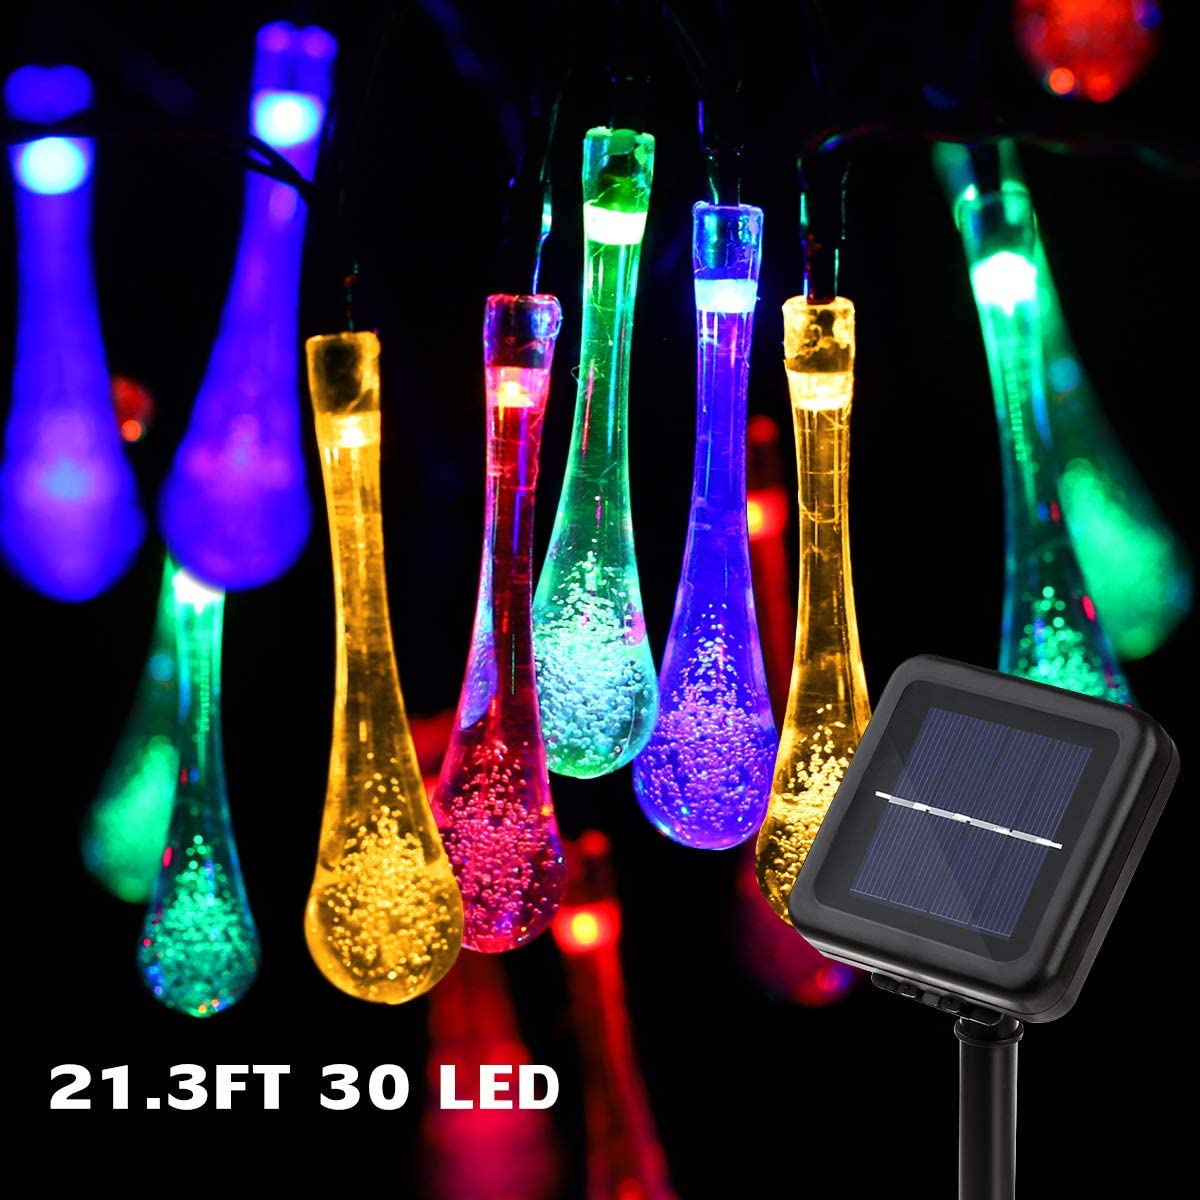 YUNLIGHTS Solar String Lights Outdoor, 21.3 Feet 30 LED Waterproof Solar Raindrop String Lights - Solar String Lights Waterdrop - Solar Powered Fairy Lights for Garden Yard Home Patio(Multi-Color)